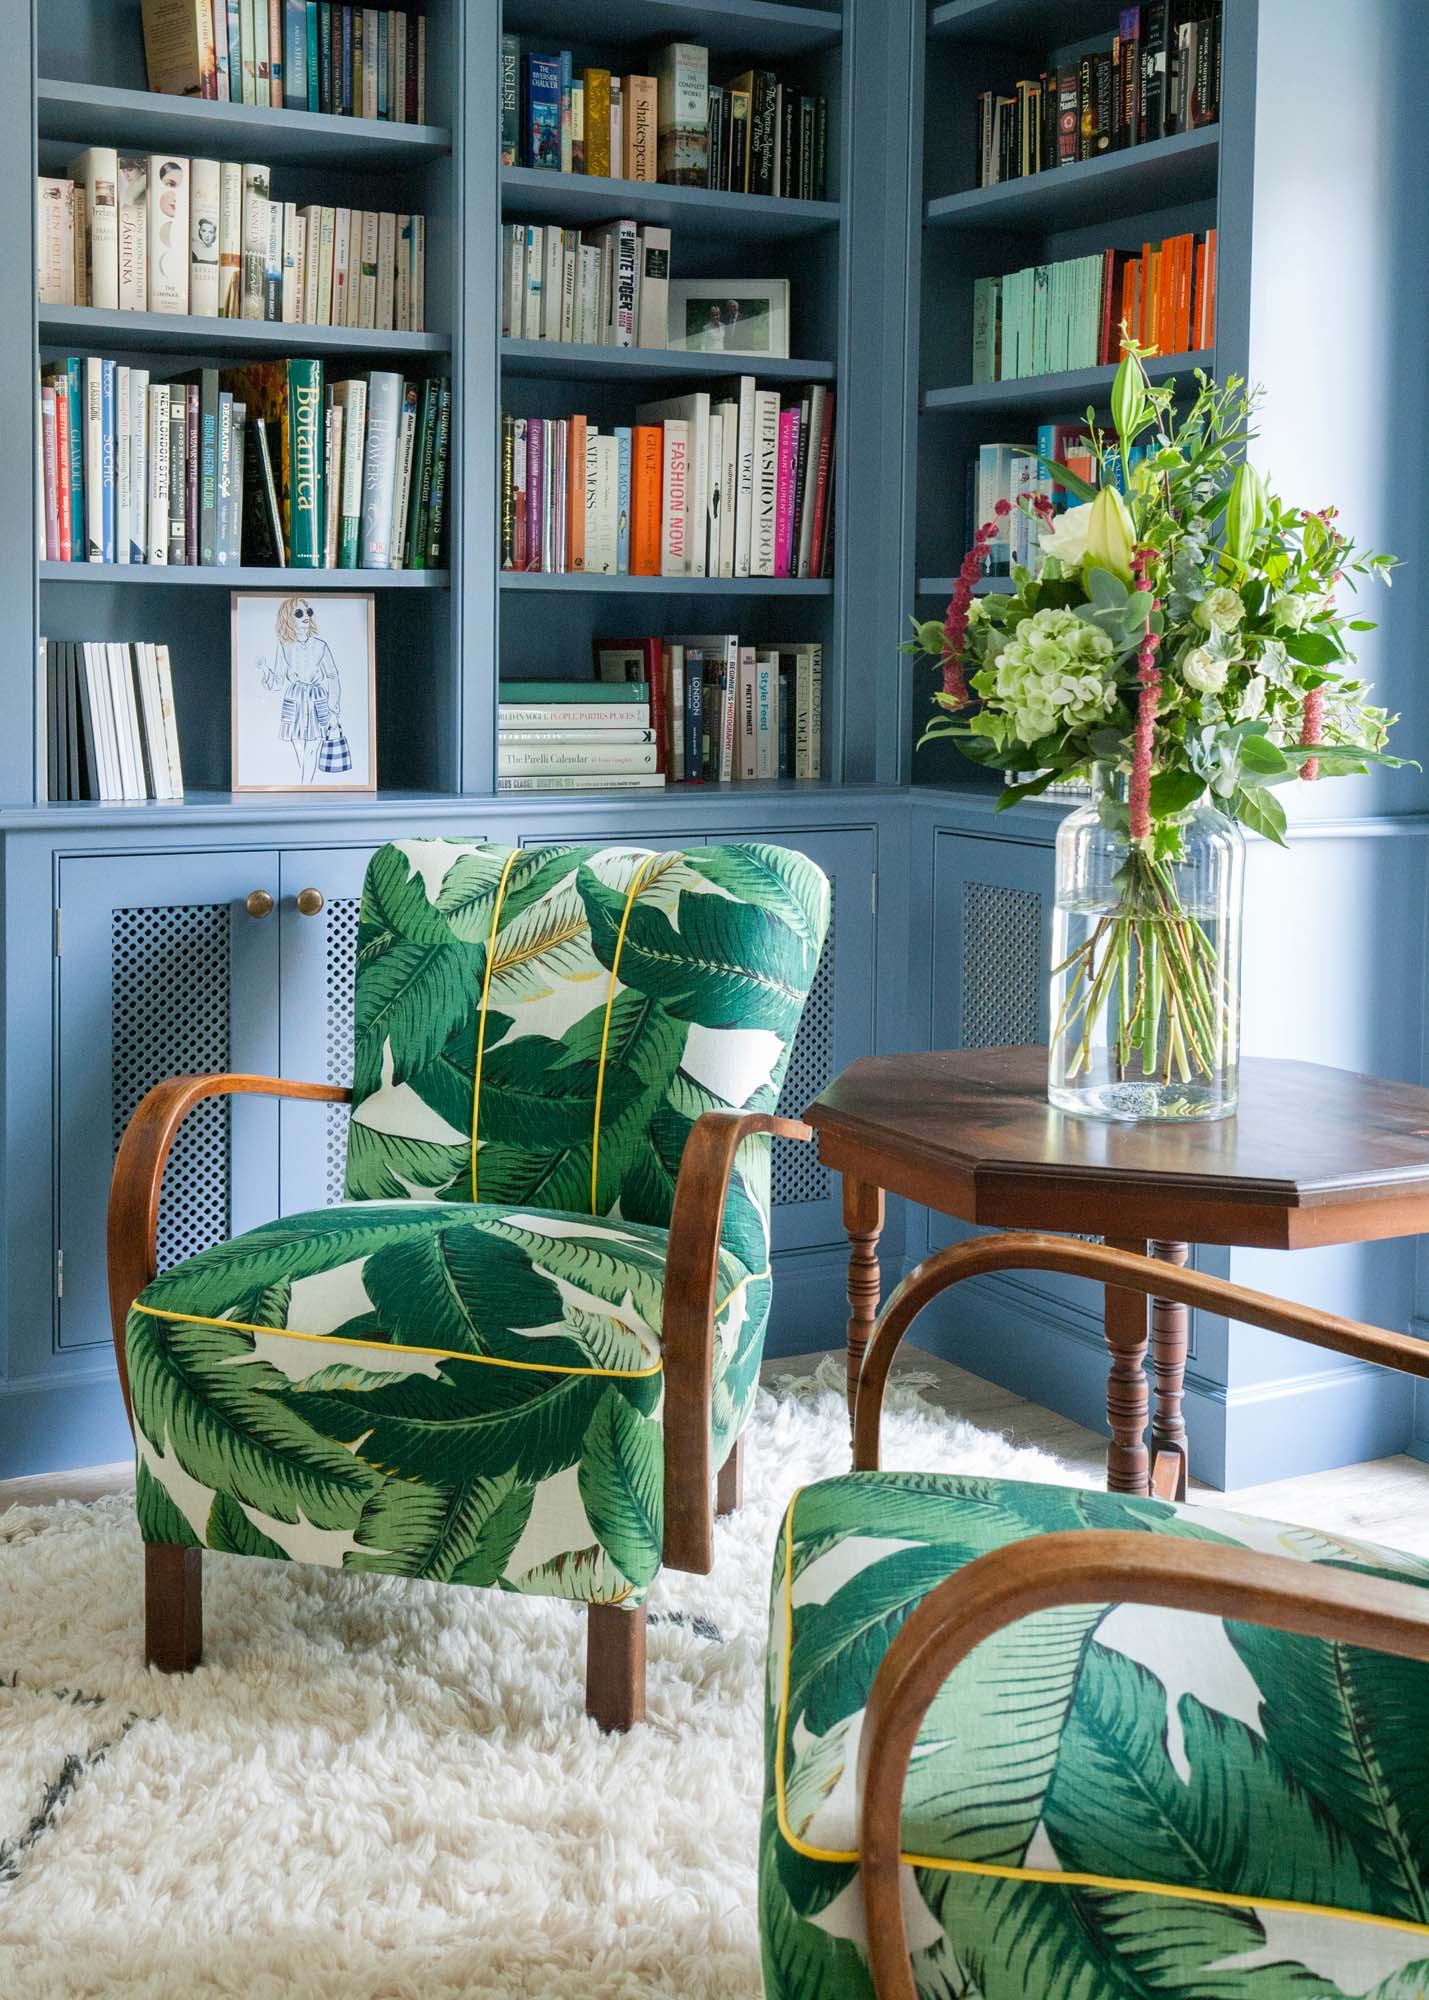 The perfect reading corner with built-in bookshelves